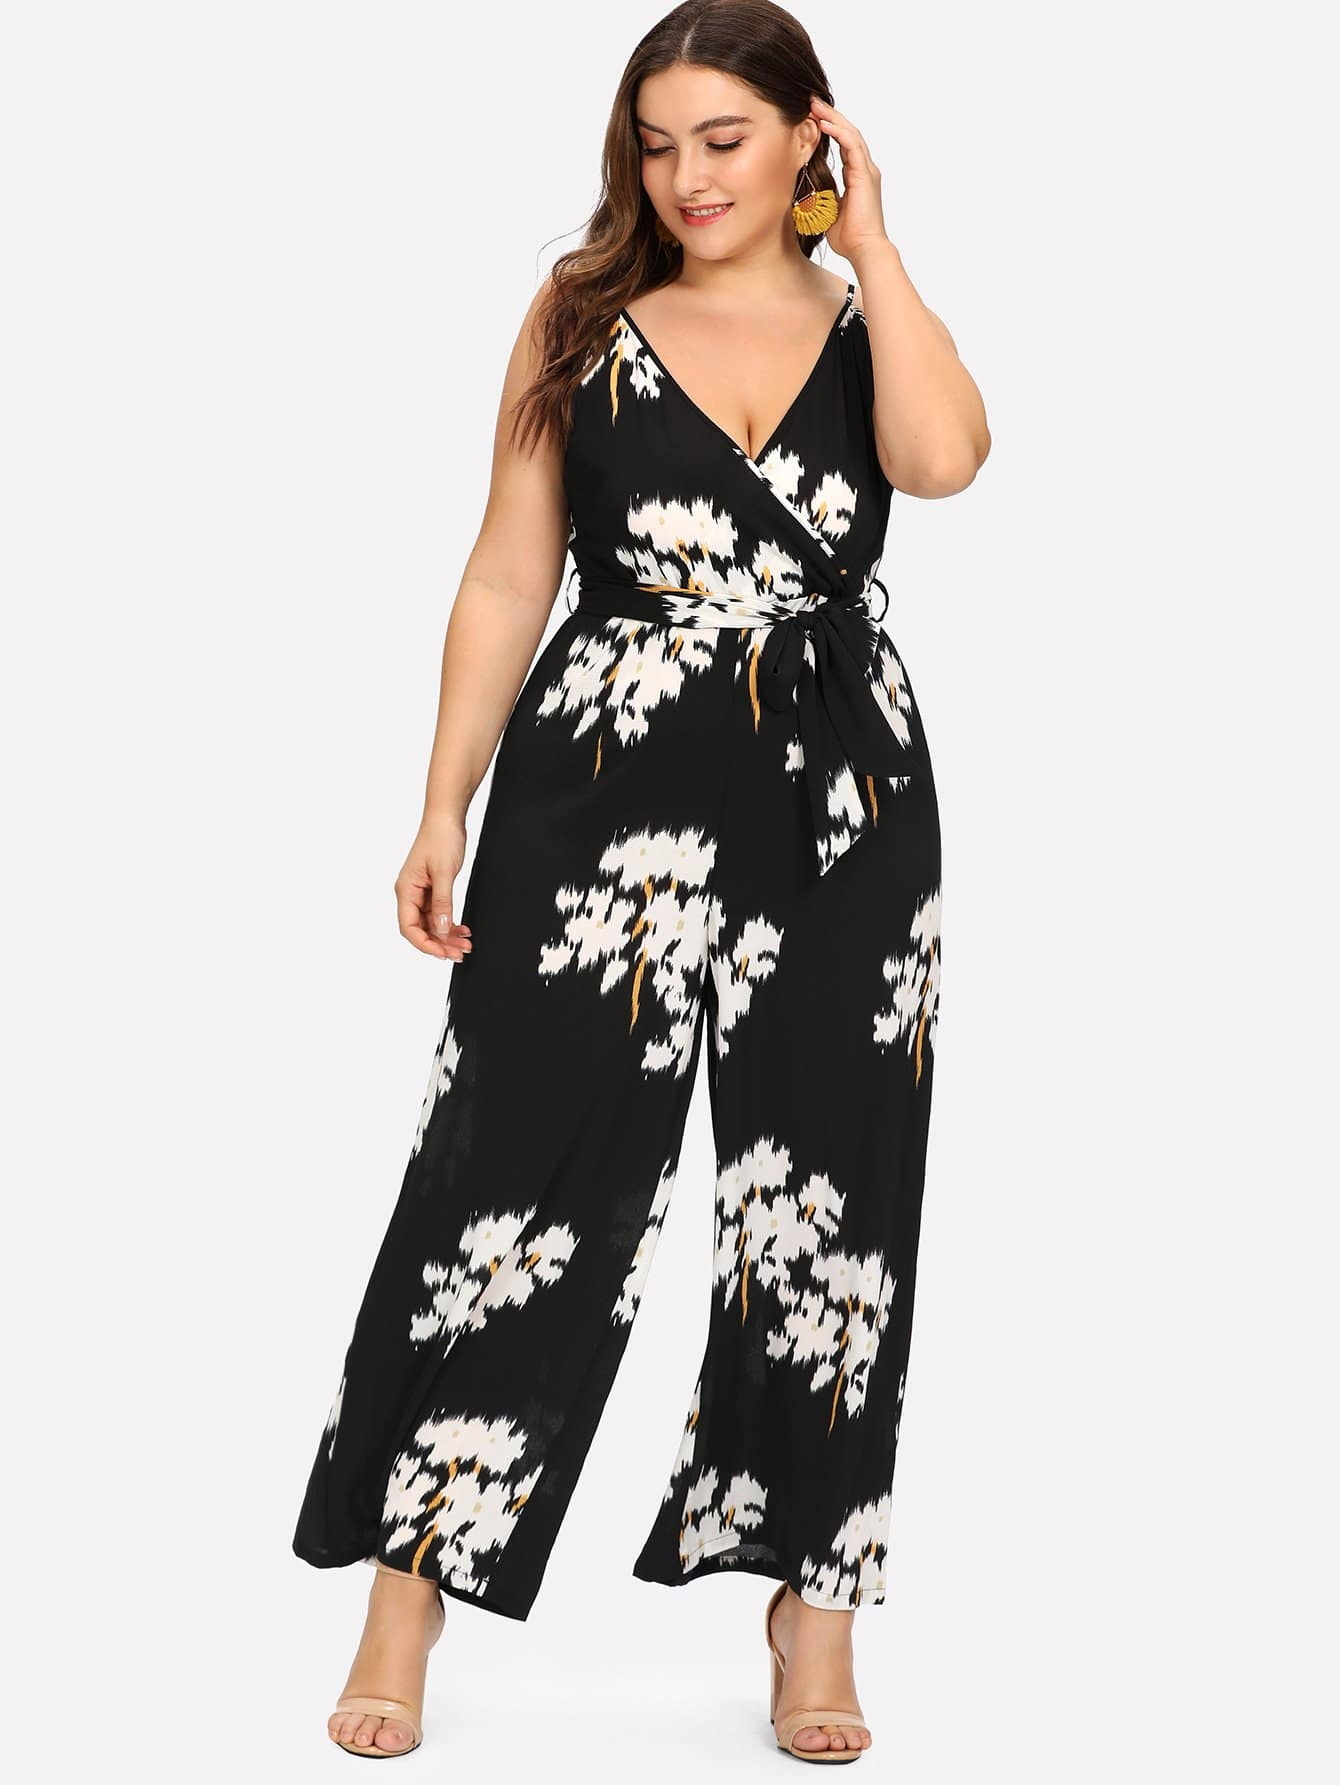 Belted Floral Wrap Cami Jumpsuit mixed print belted wrap jumpsuit